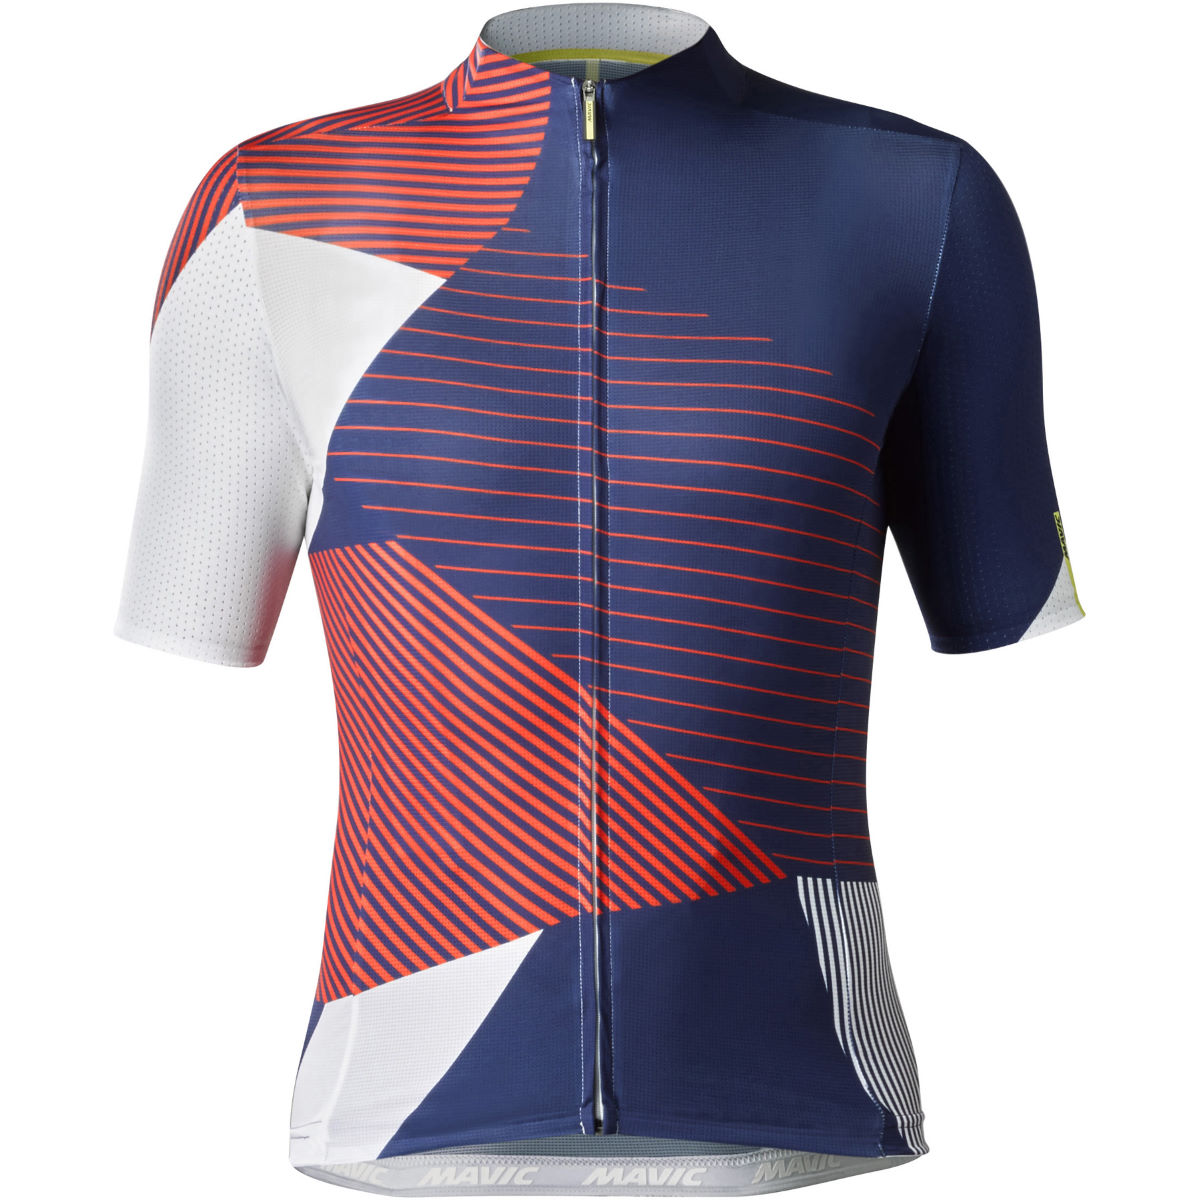 Maillot Mavic Cosmic Allure (édition limitée) - M Blue/White/Red